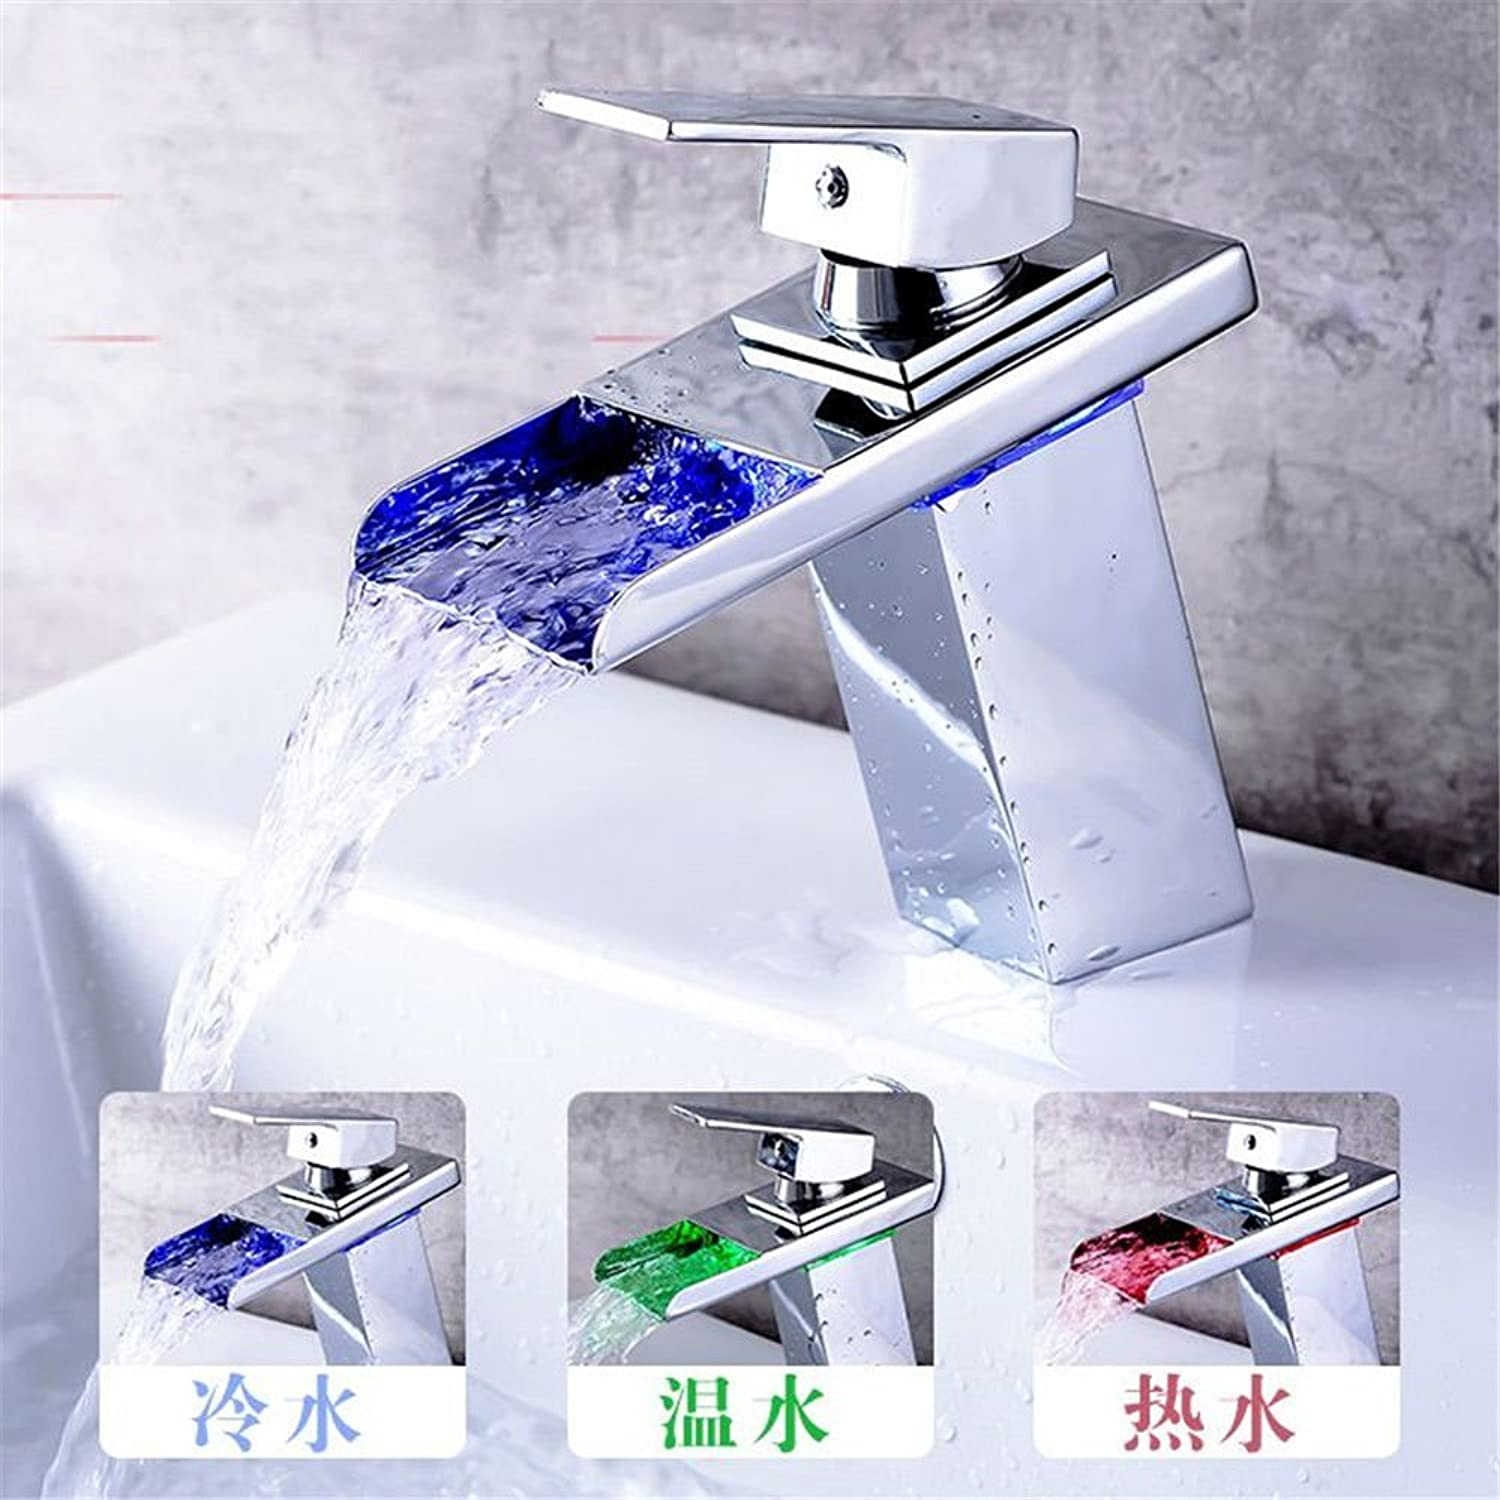 YI KUI Sink Taps Led Full Copper Faucet Single Hole and Cold Water Washing Basin Faucet Waterfall Water Chrome Plated Basin Sink Mixer Faucets